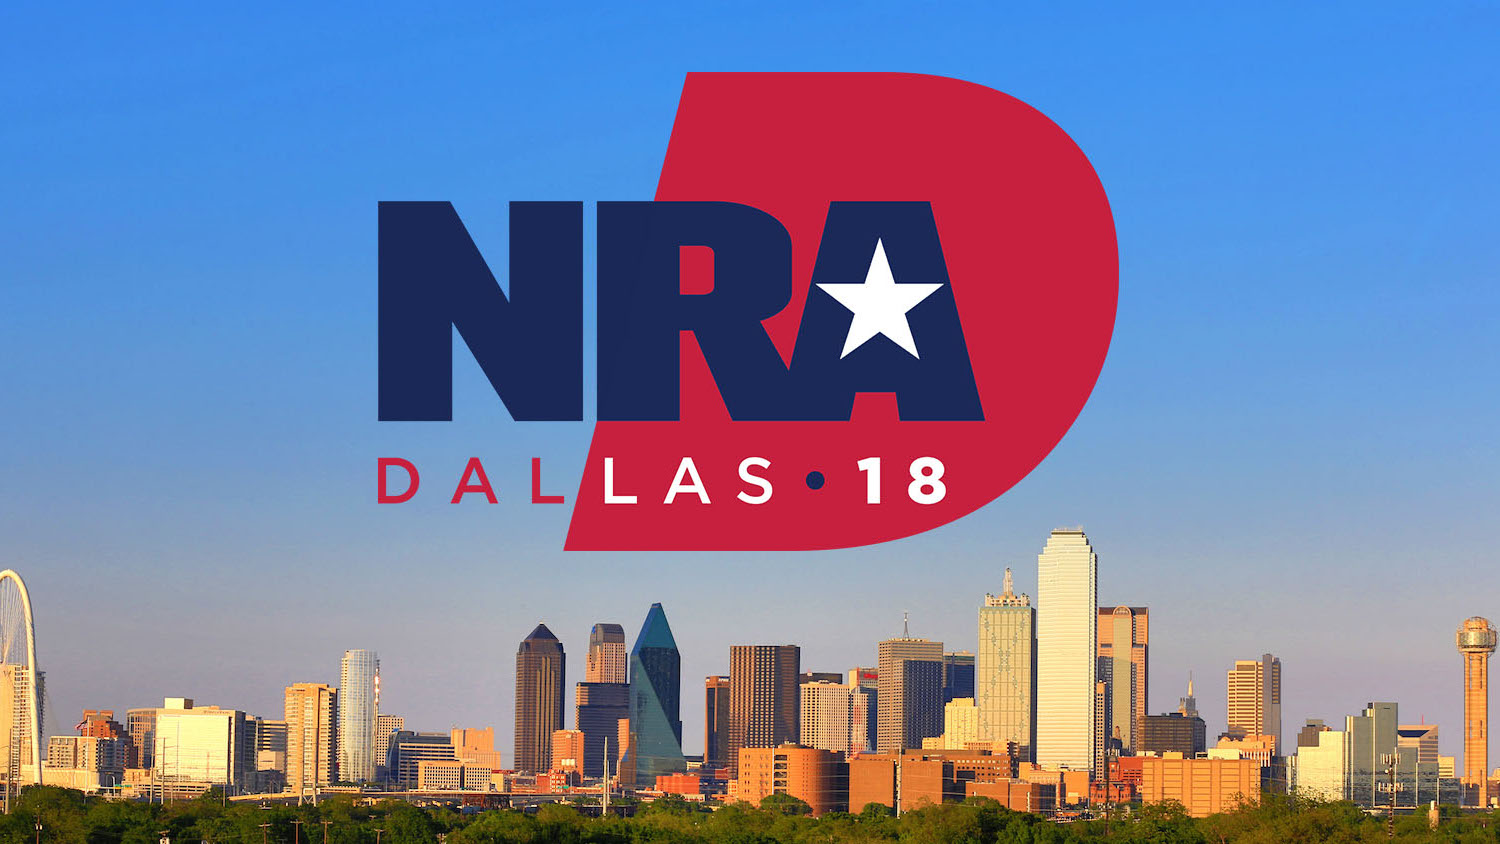 NRA Annual Meeting Events: Thursday, May 3